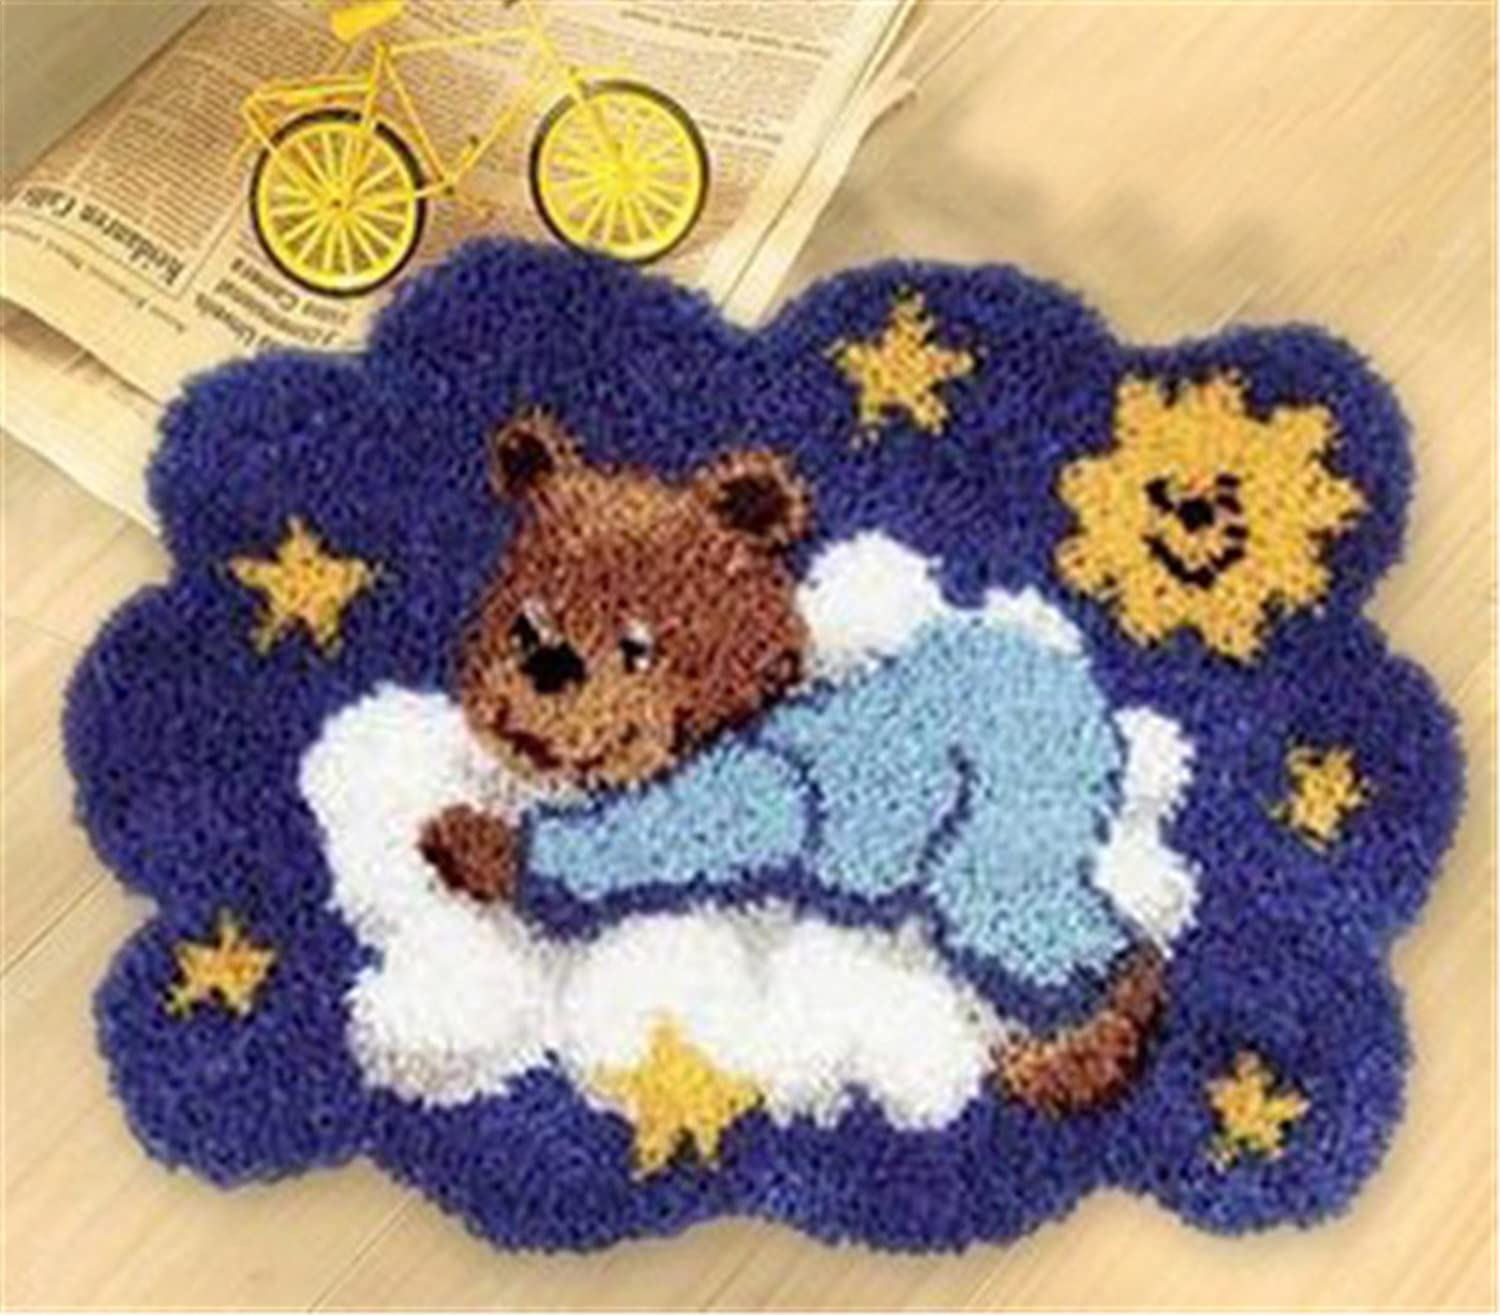 DIY Latch Hook Kit Rug Making Crafts for Kids/Adults 21 inch X 15 inch Bear002 Beyond Your Thoughts